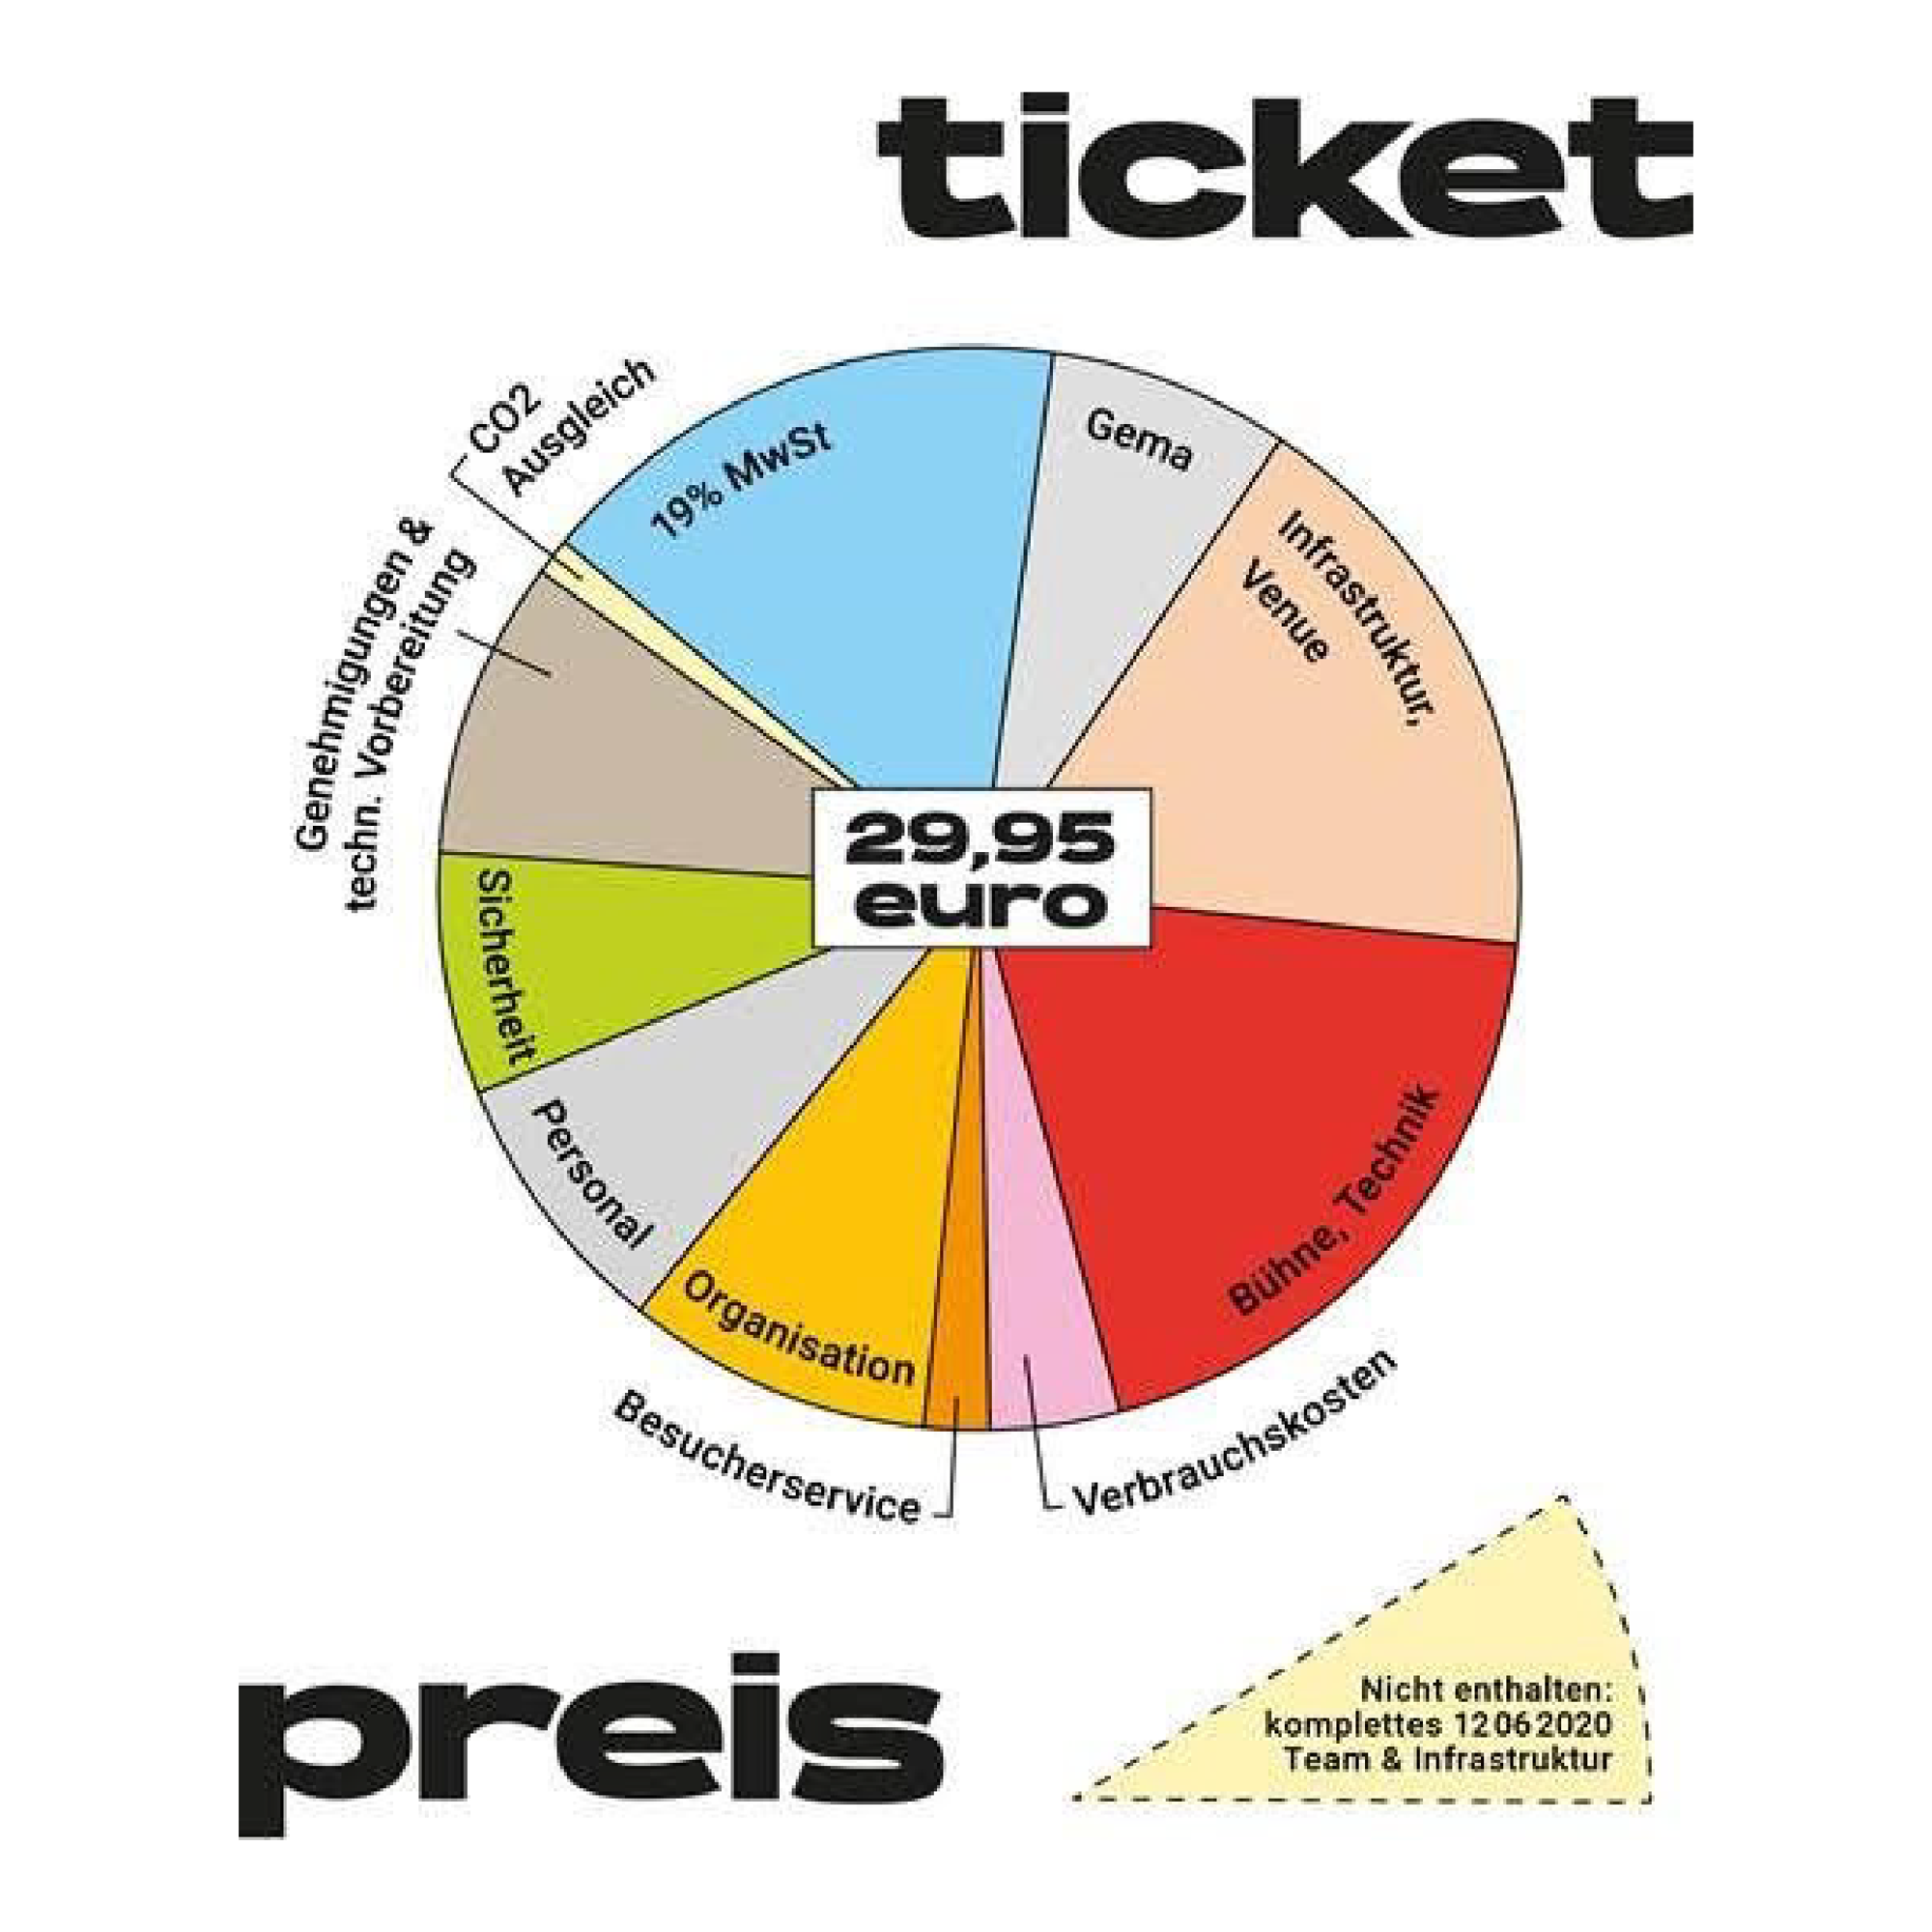 olympia_ticketpreis-01.png